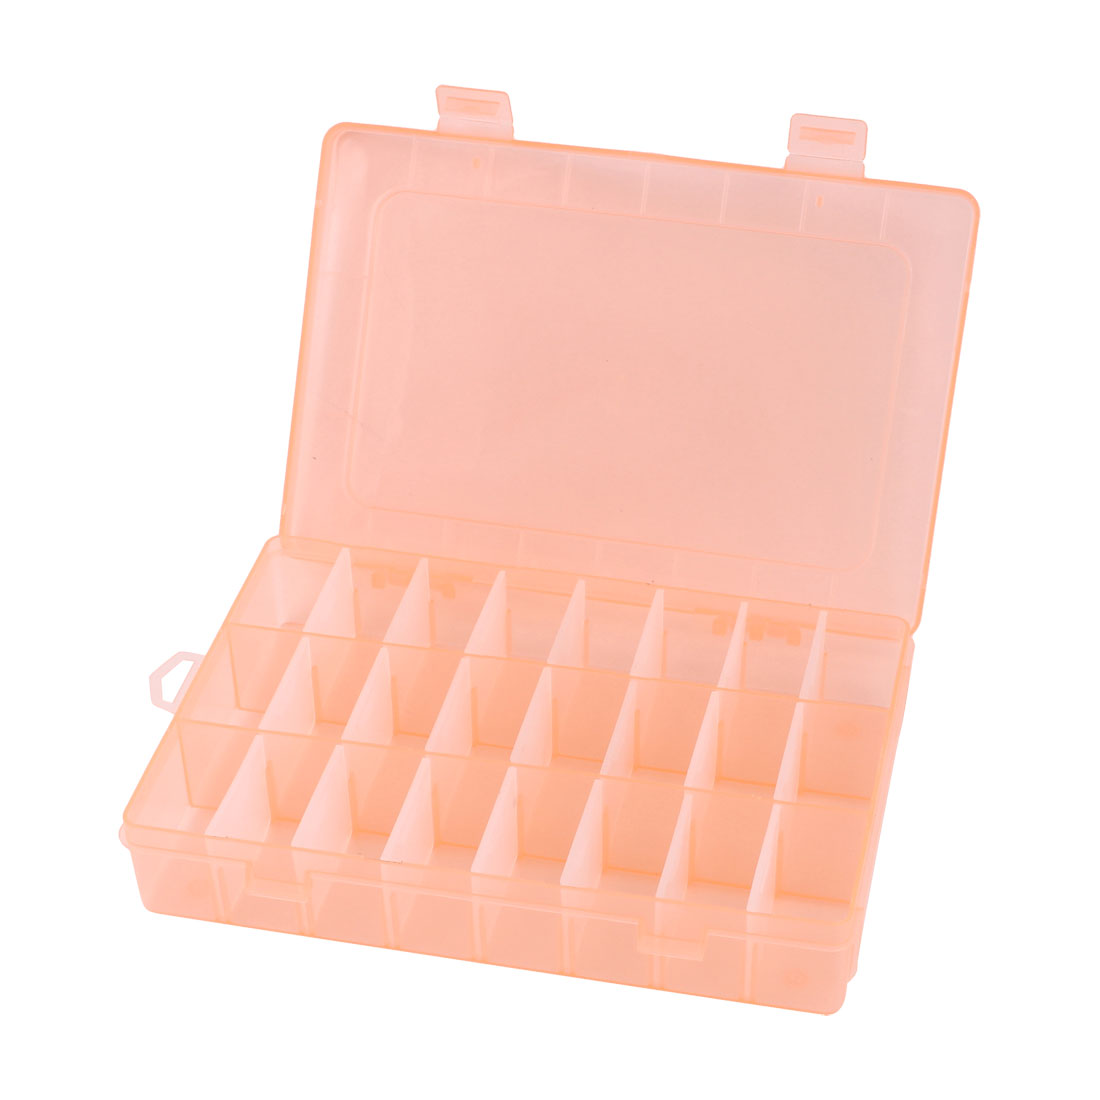 Unique Bargains Adjustable 24 3 Slots Jewelry Storage Box Case Craft Bead Organizer Coral Pink by